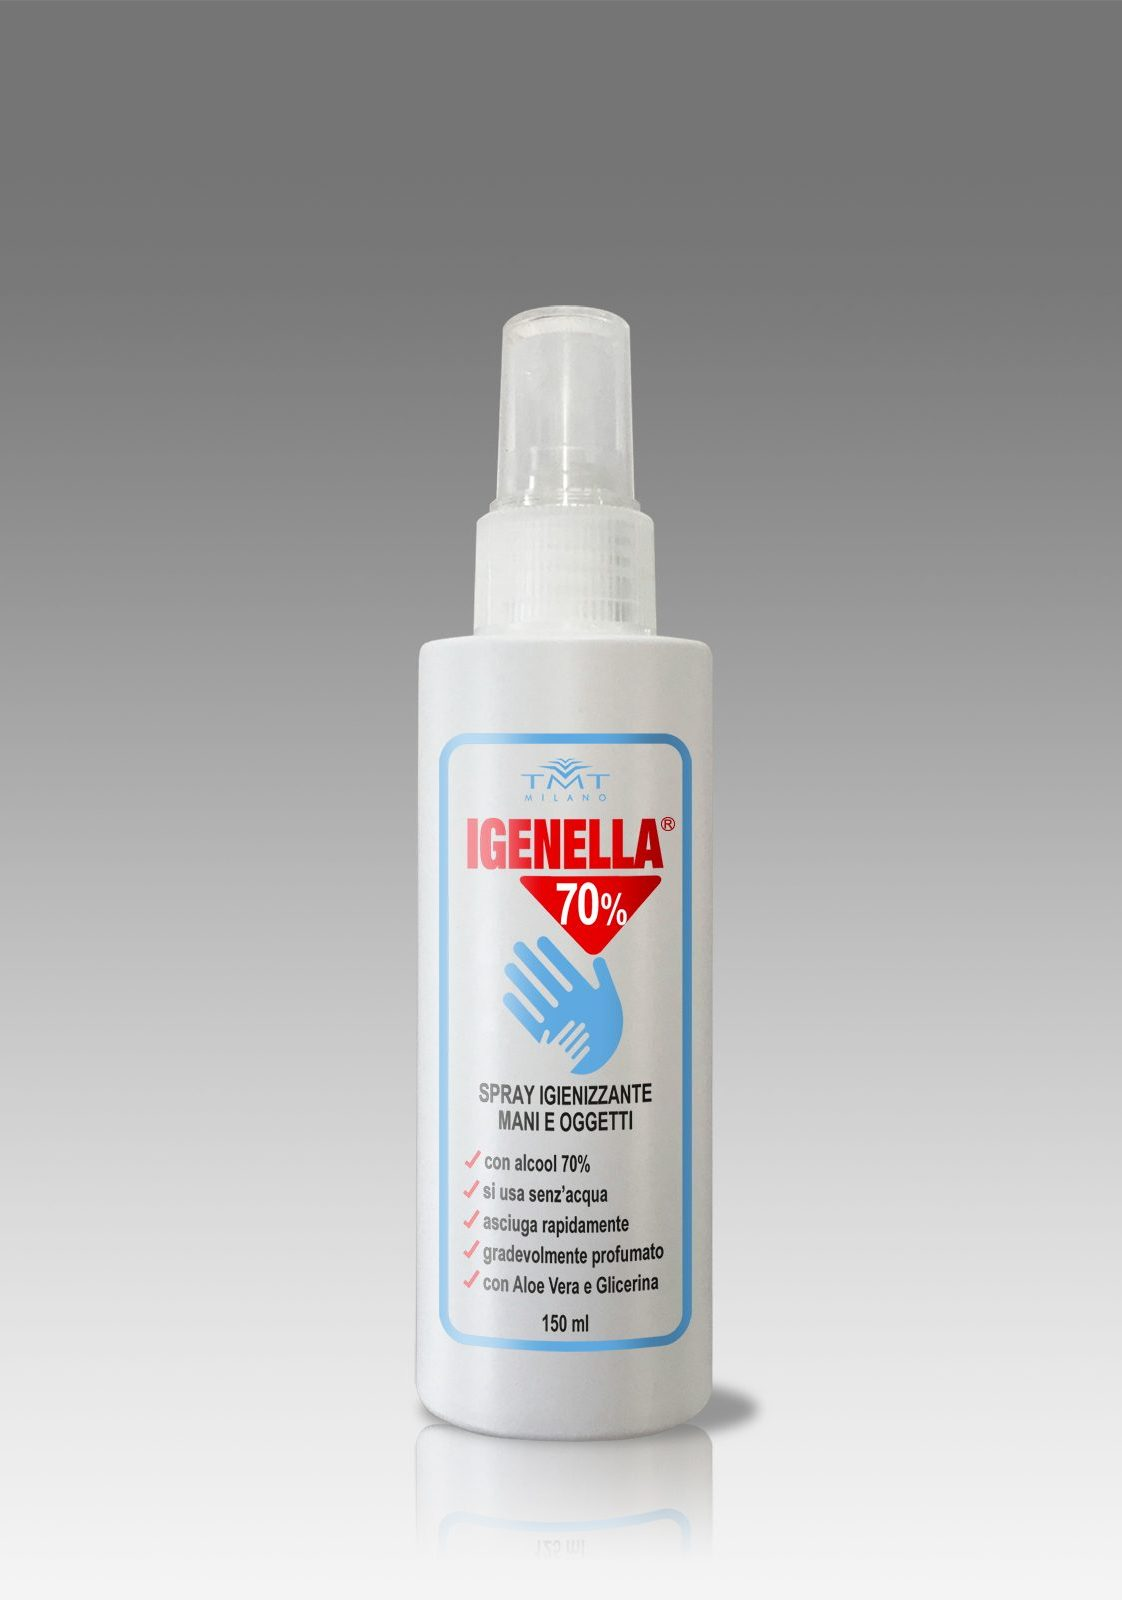 igenella spray